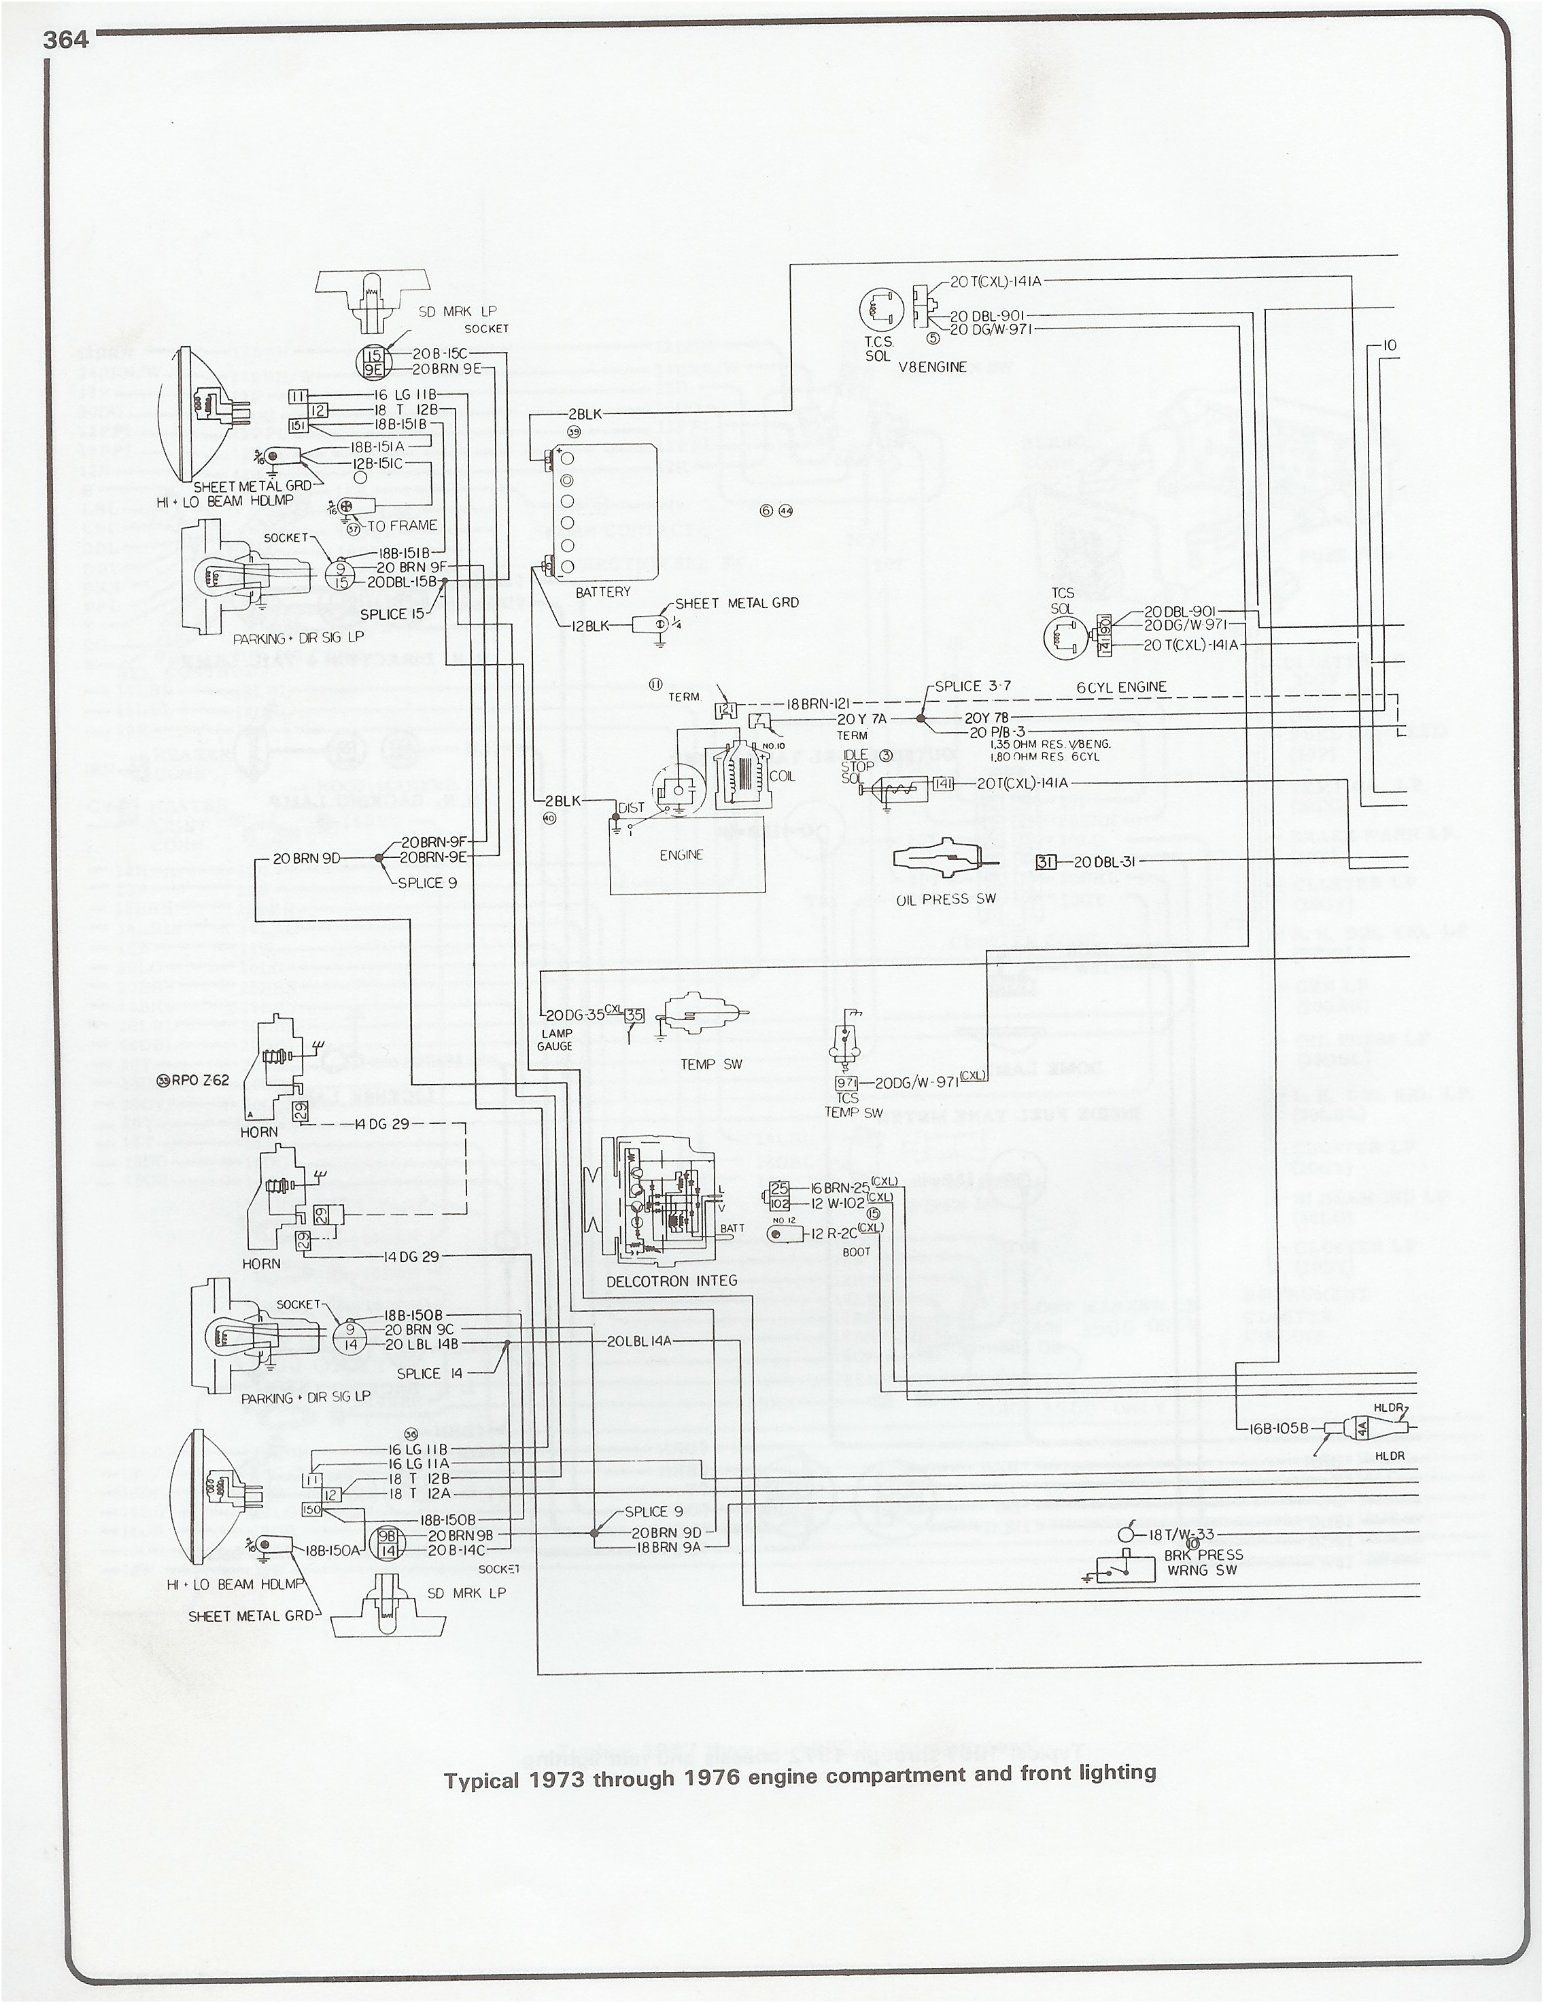 small resolution of 1976 gmc fuse panel diagram wiring diagram used1976 gmc silverado fuse box wiring diagram new 1976